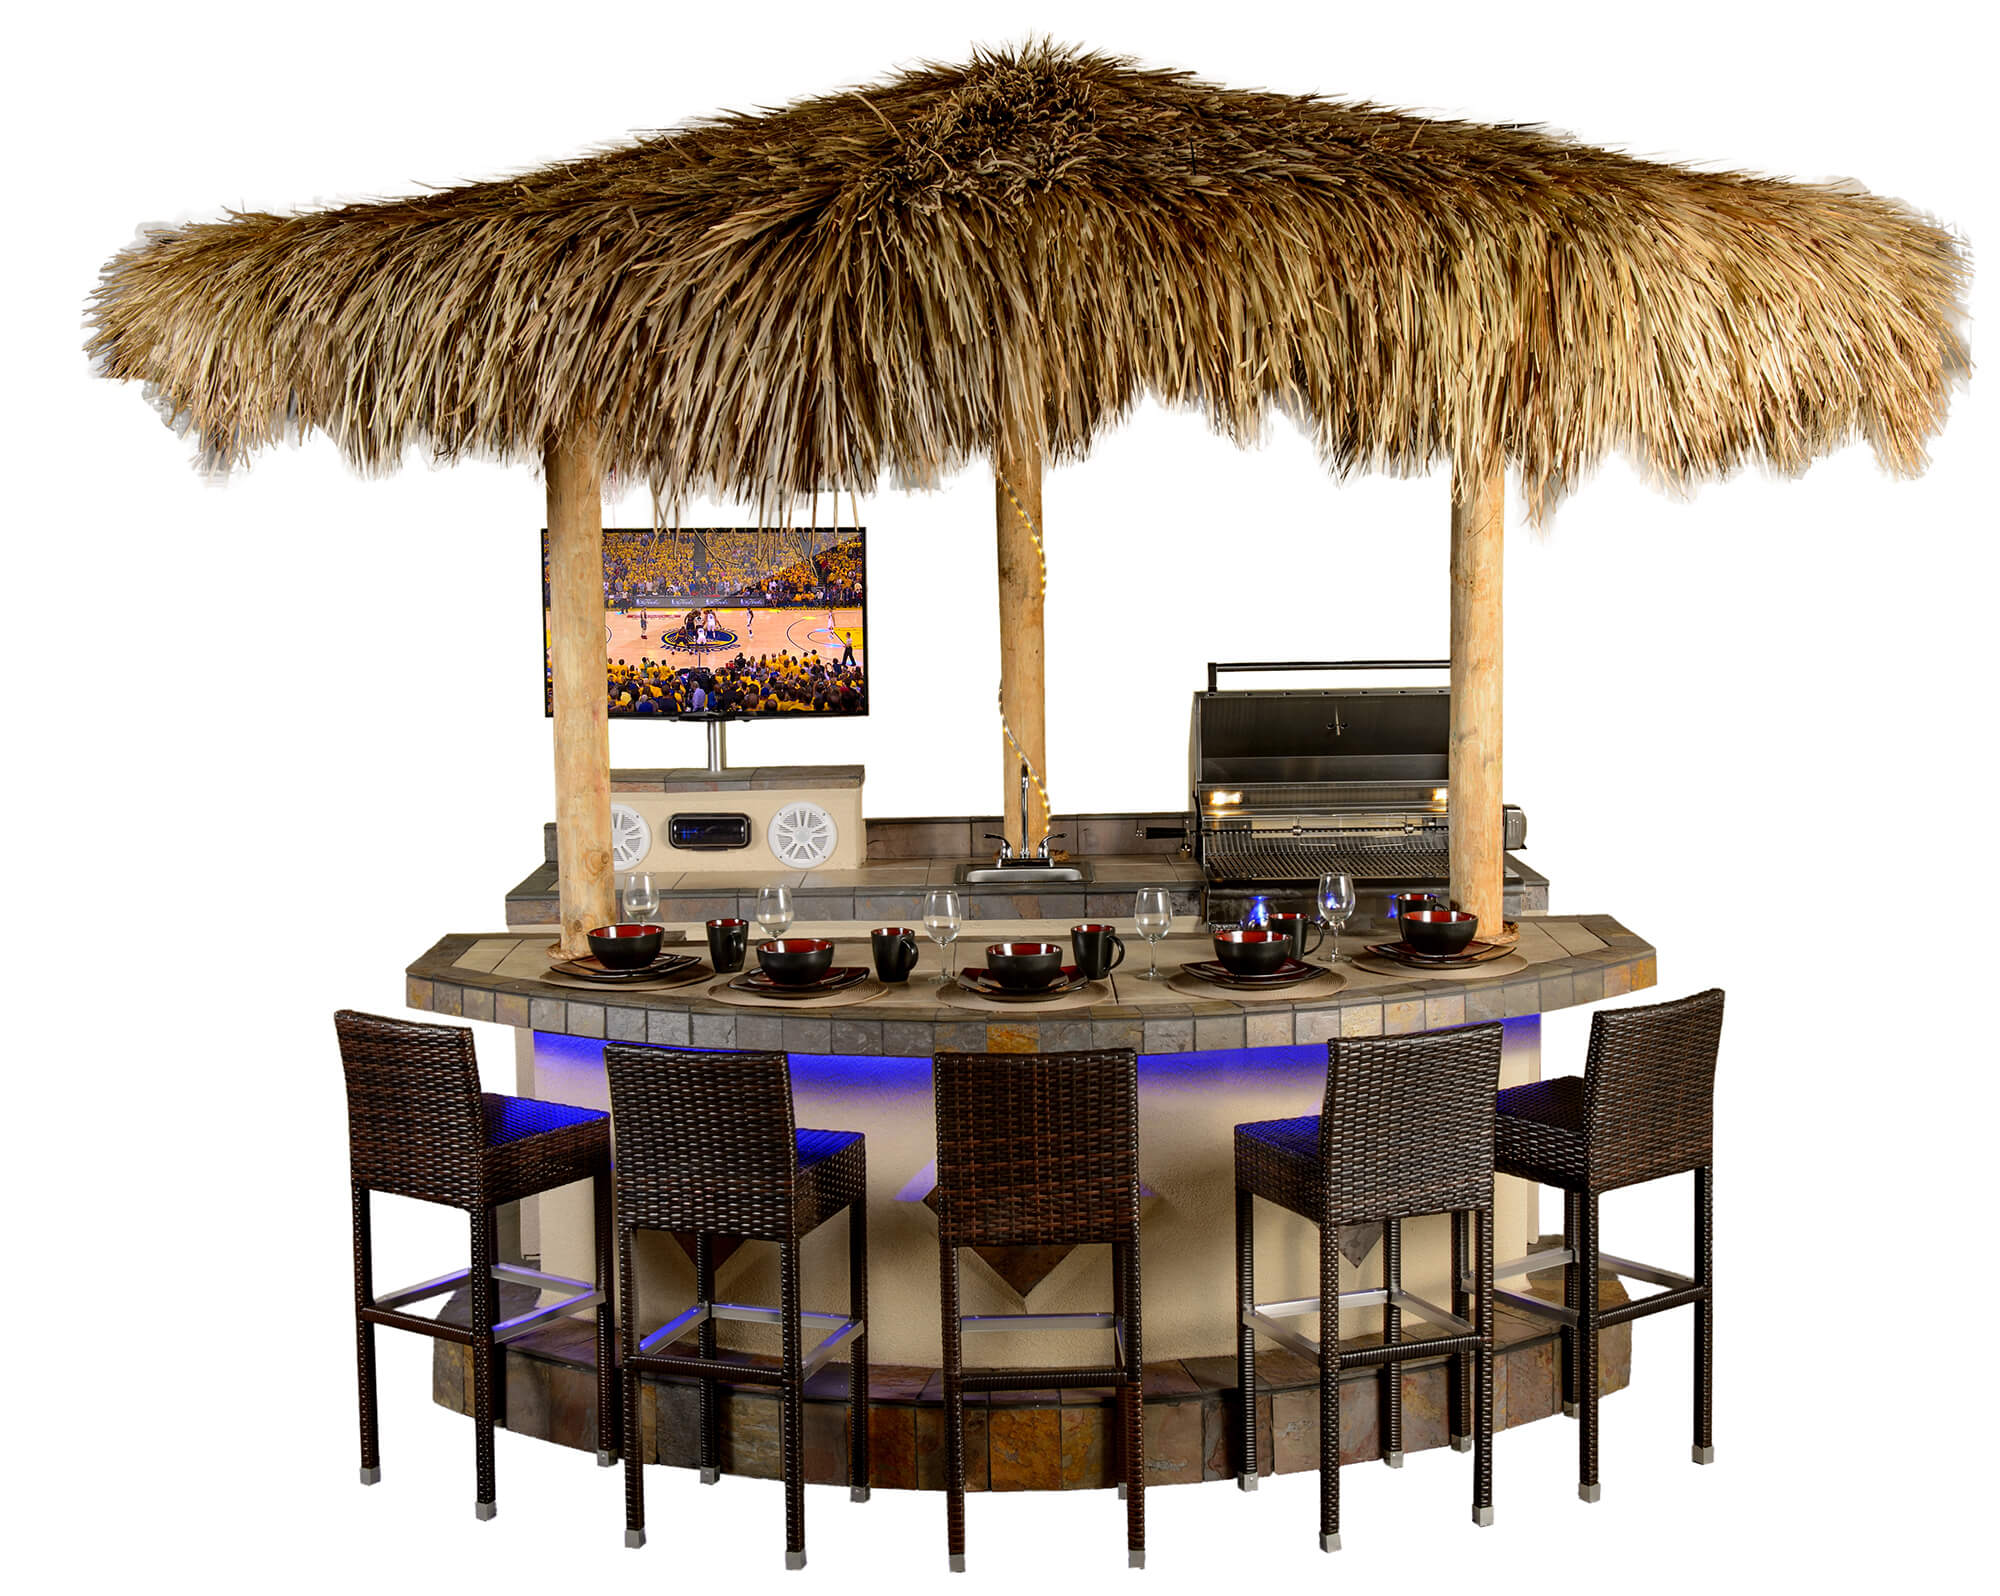 The Tahiti Tiki Bar is a Prardise Grills favorite outdoor bar